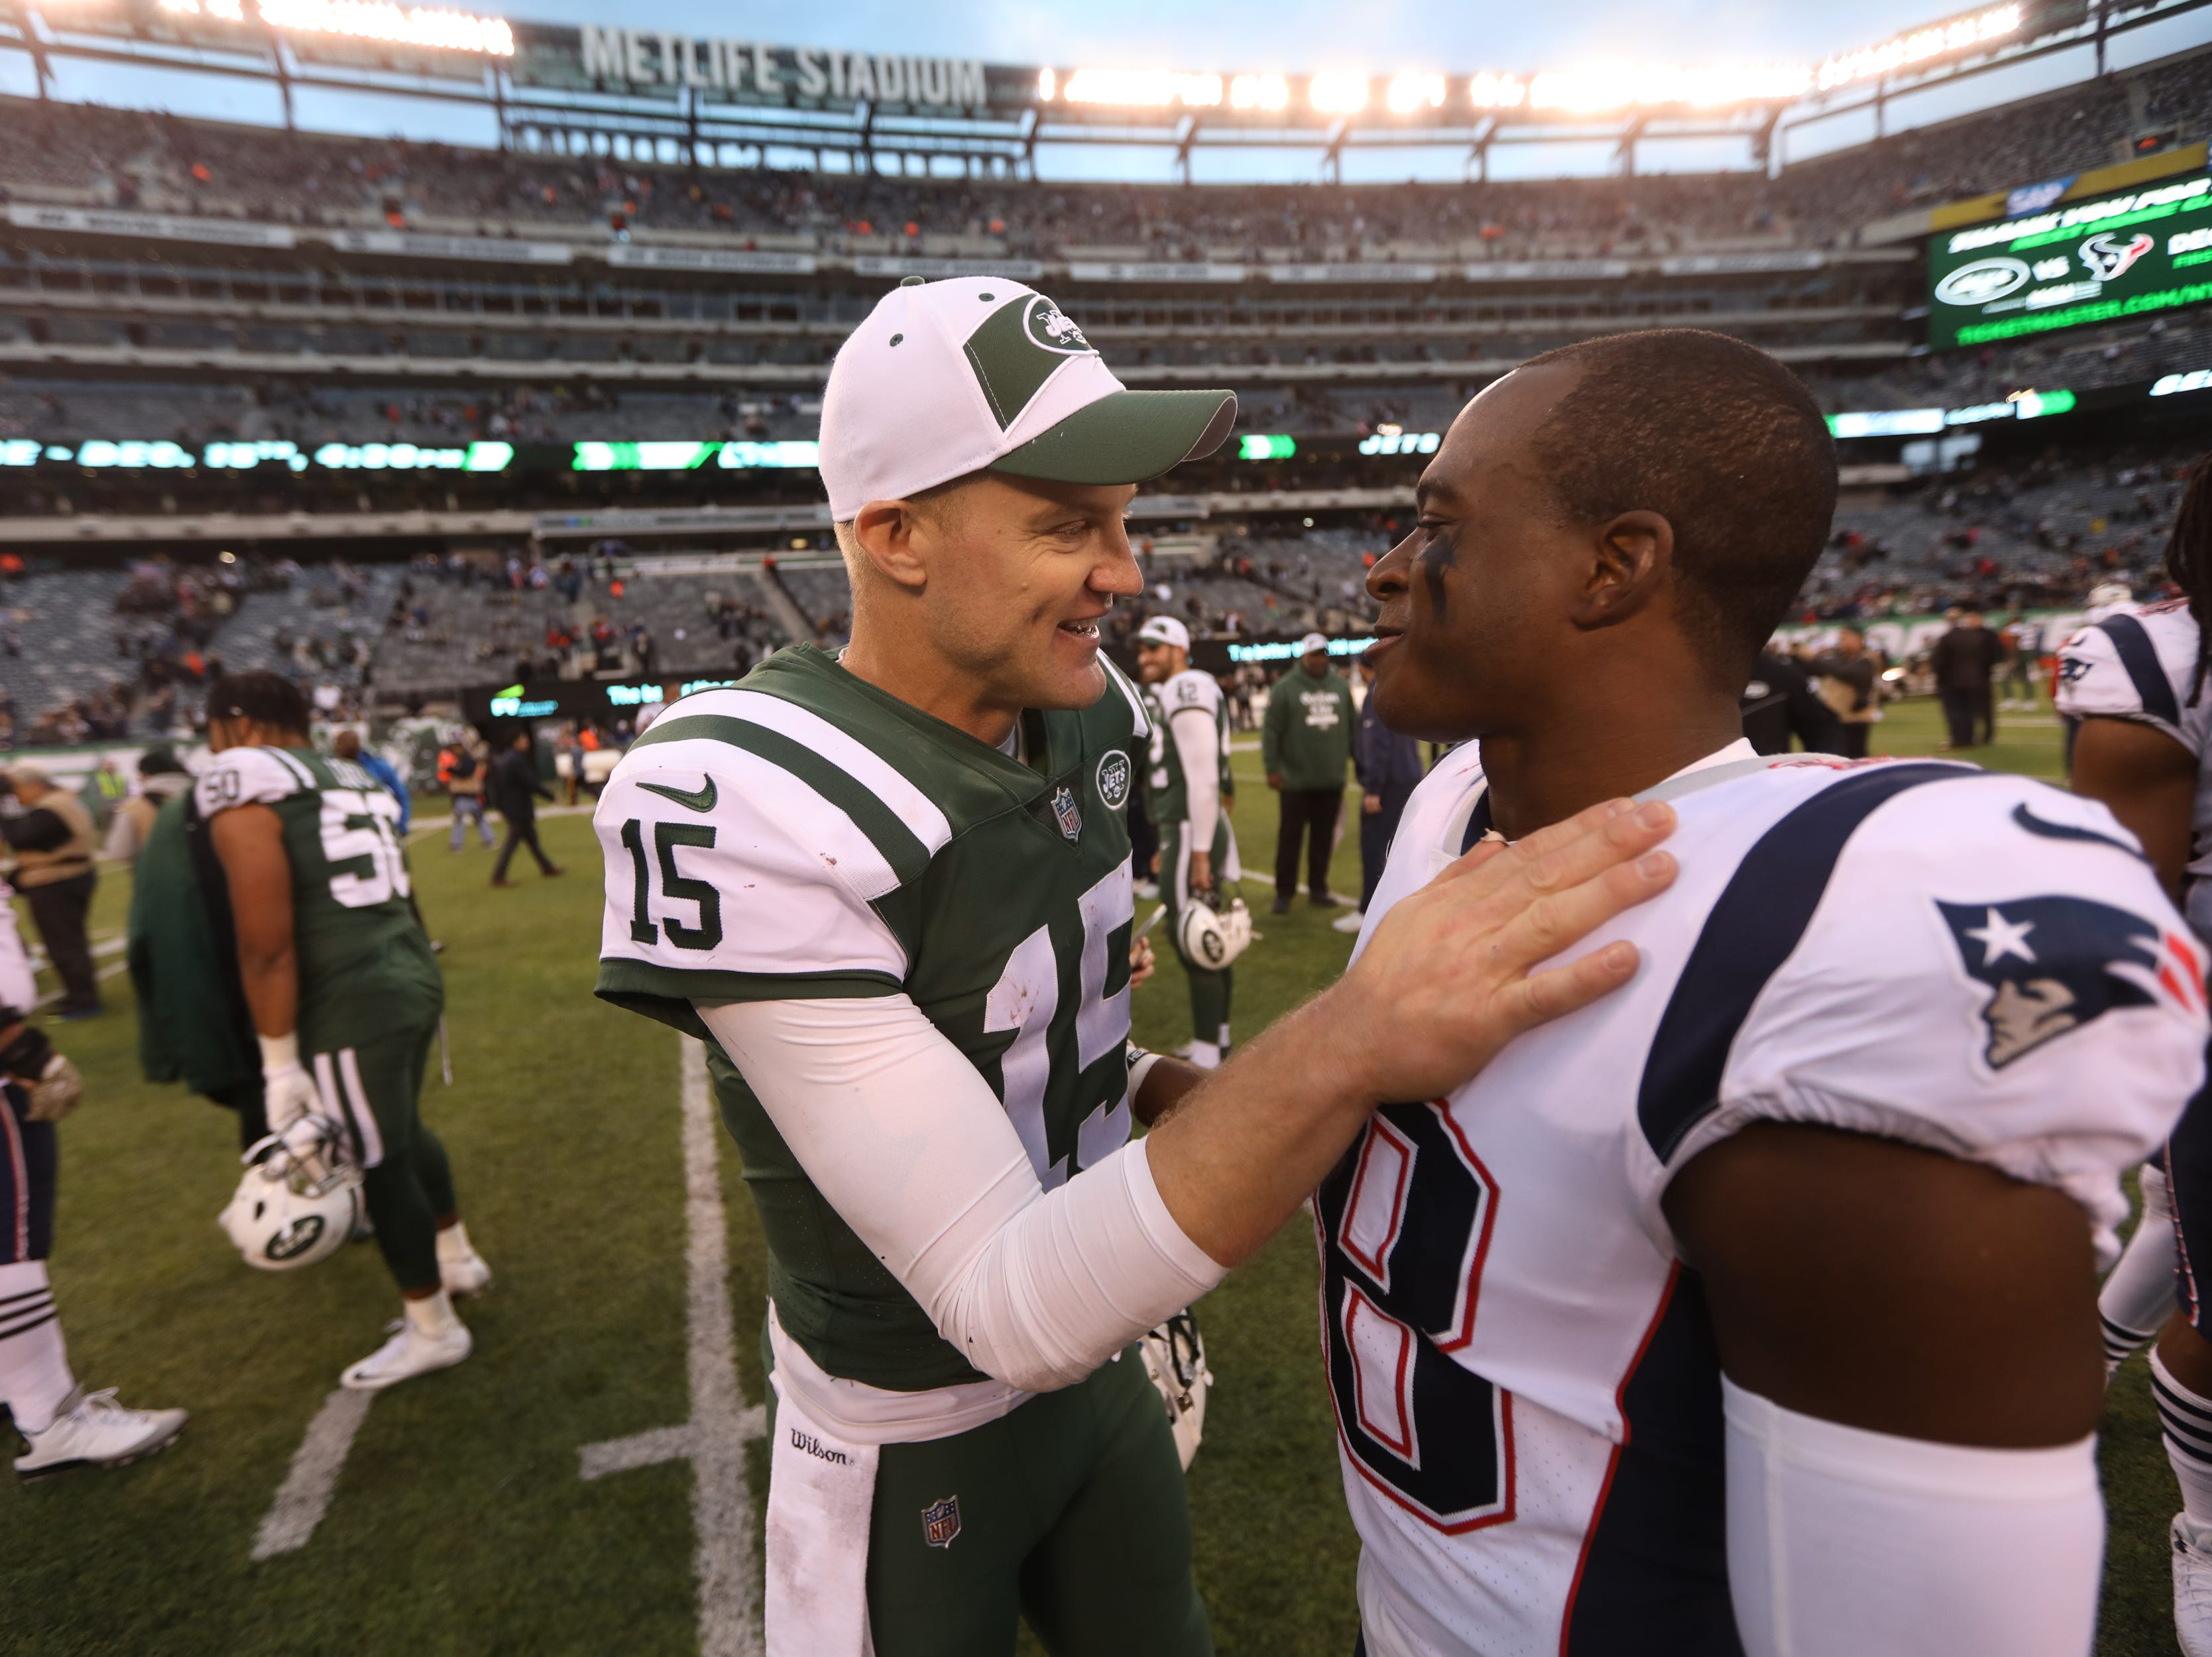 Josh McCown, of the Jets and Matthew Slater, of the Patriots, greet each other after the game.   Sunday, November 25, 2018